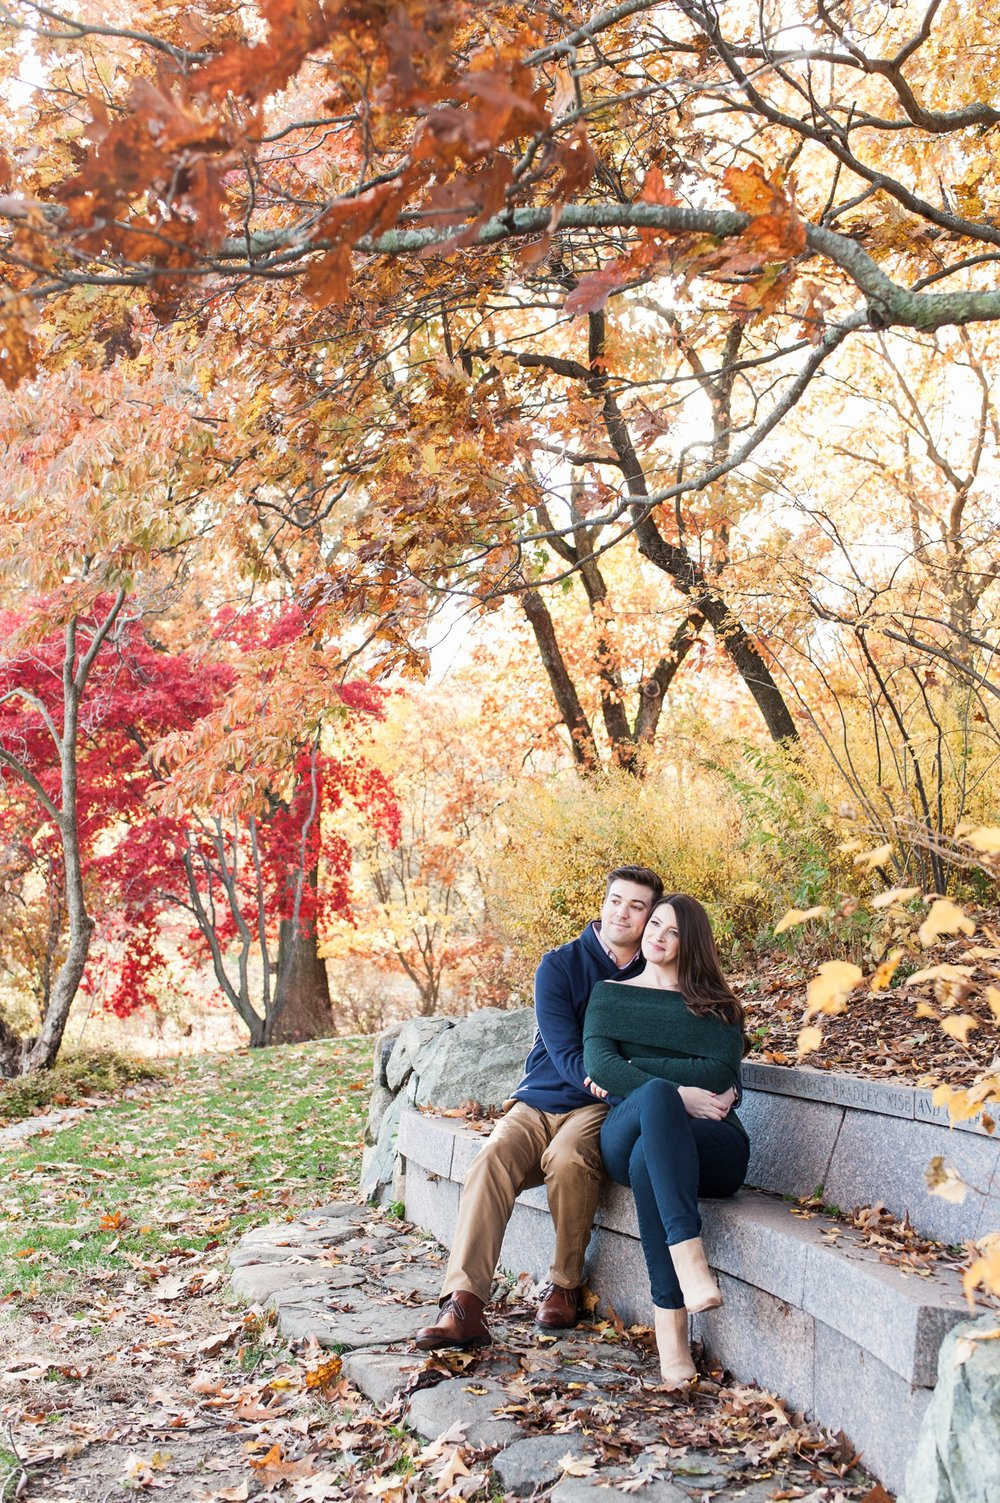 arnold arboretum rustic fall boston engagement session golden hour light fall leaves and chic engagement style